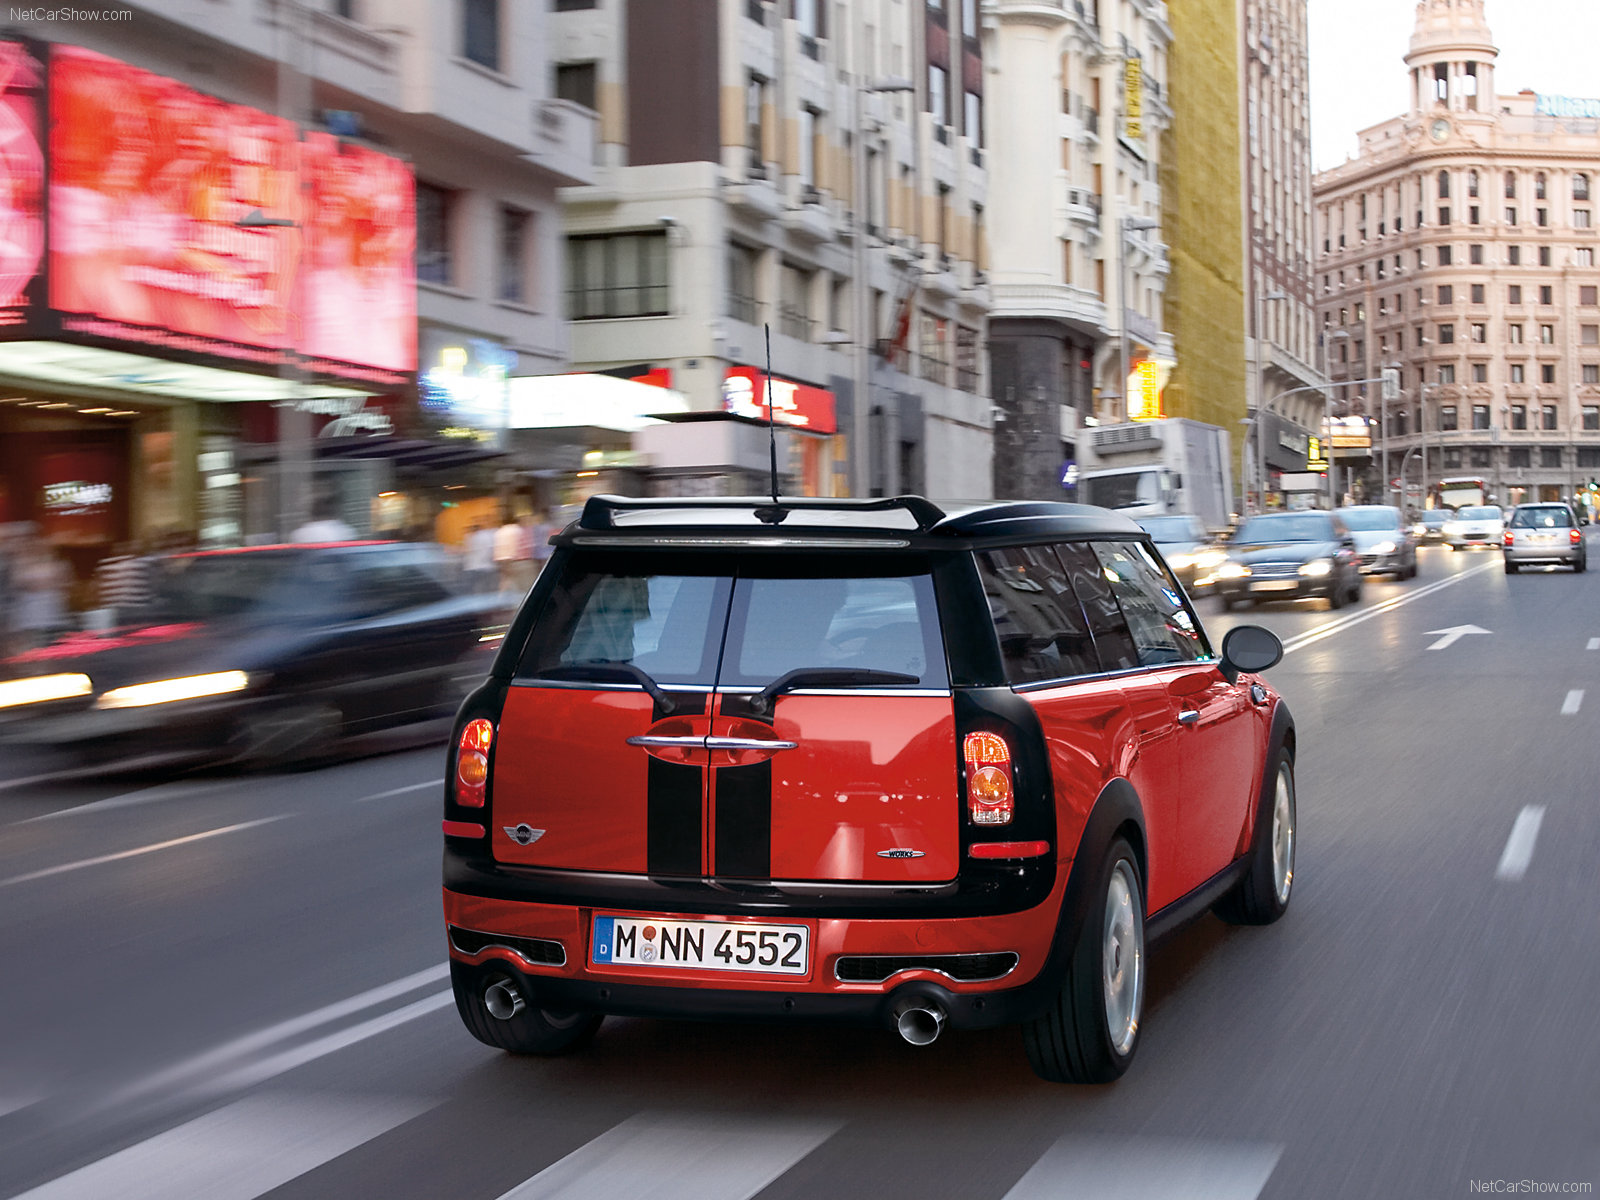 My Perfect Mini Cooper John Works 3dtuning Probably The Best Car